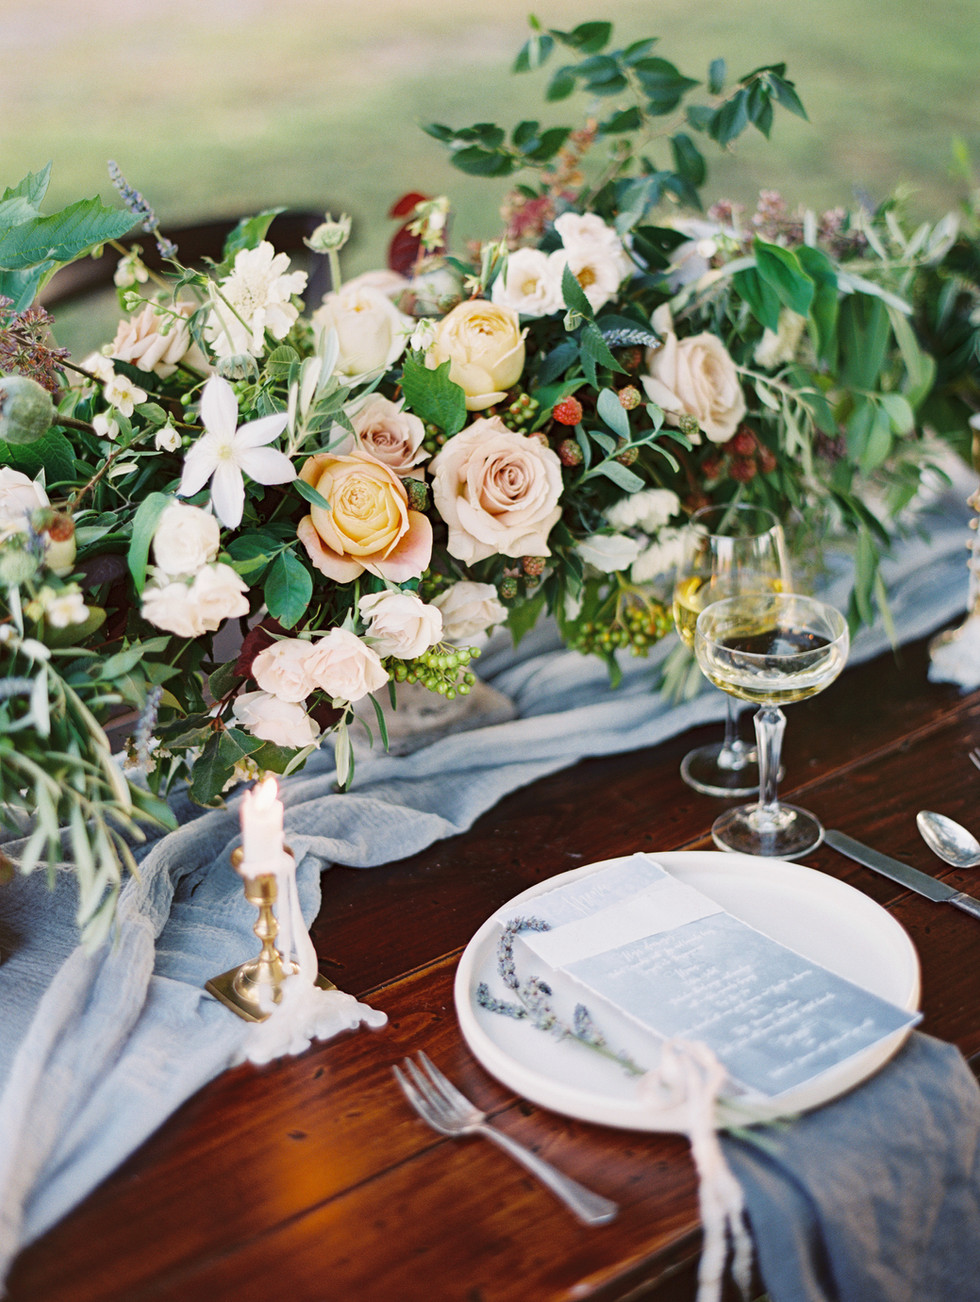 Romantic tablescape at Pahrump Winery. Photo: Gaby Jeter